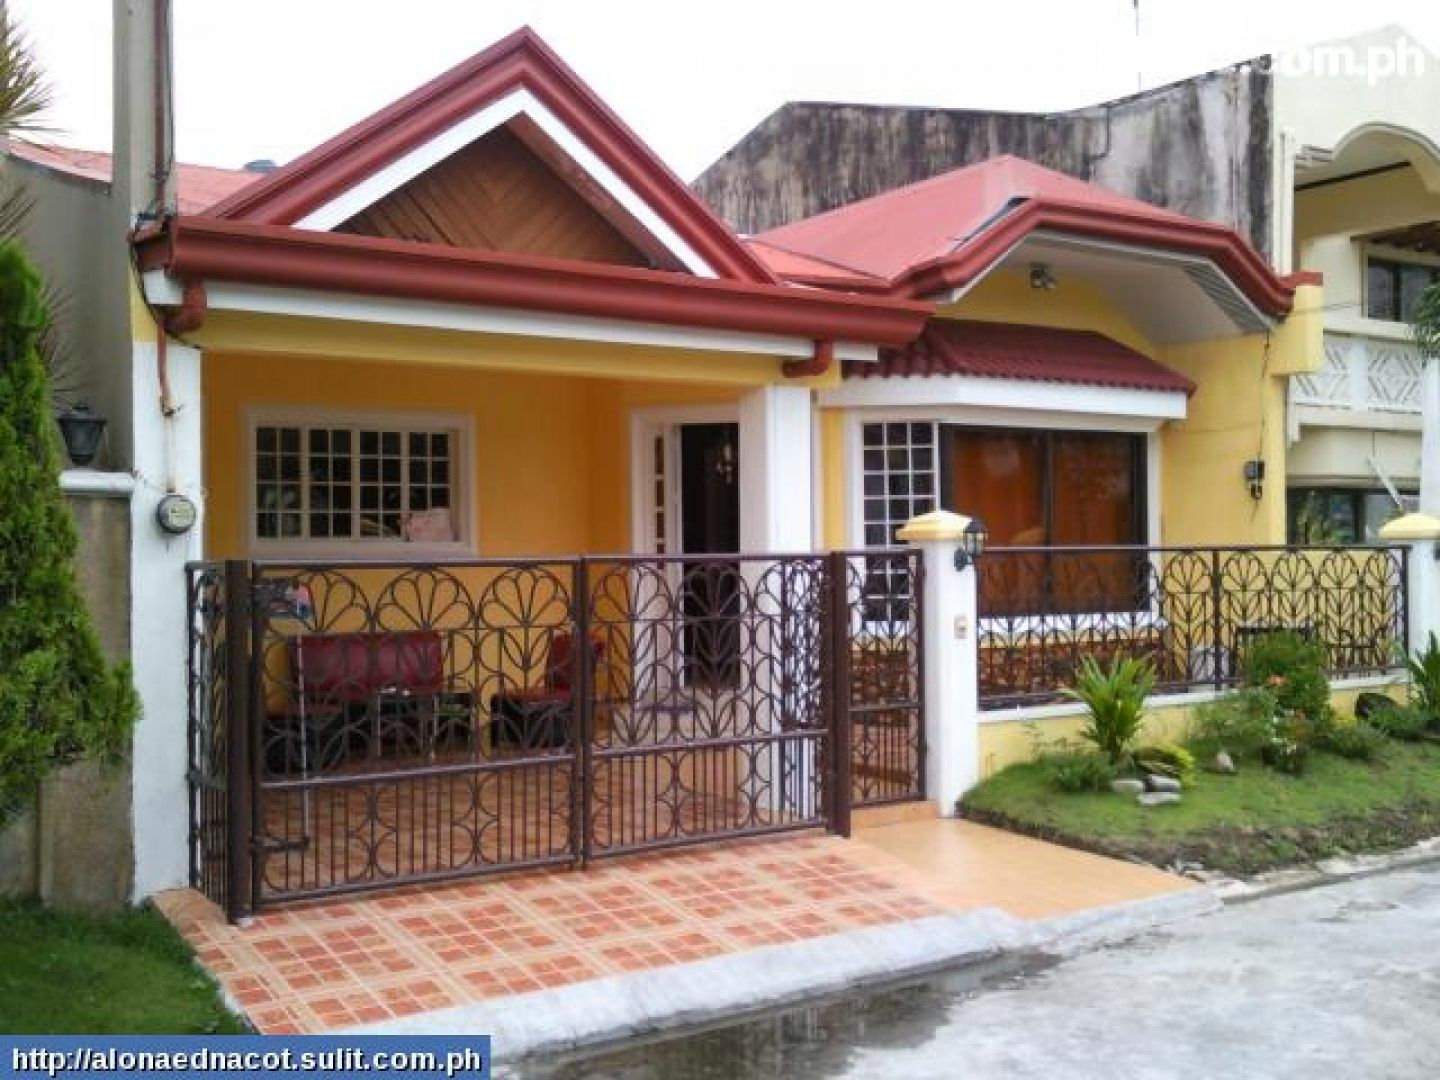 Floor Plans 3 Bedroom Bungalow House Plans Philippines 3: simple home designs photos